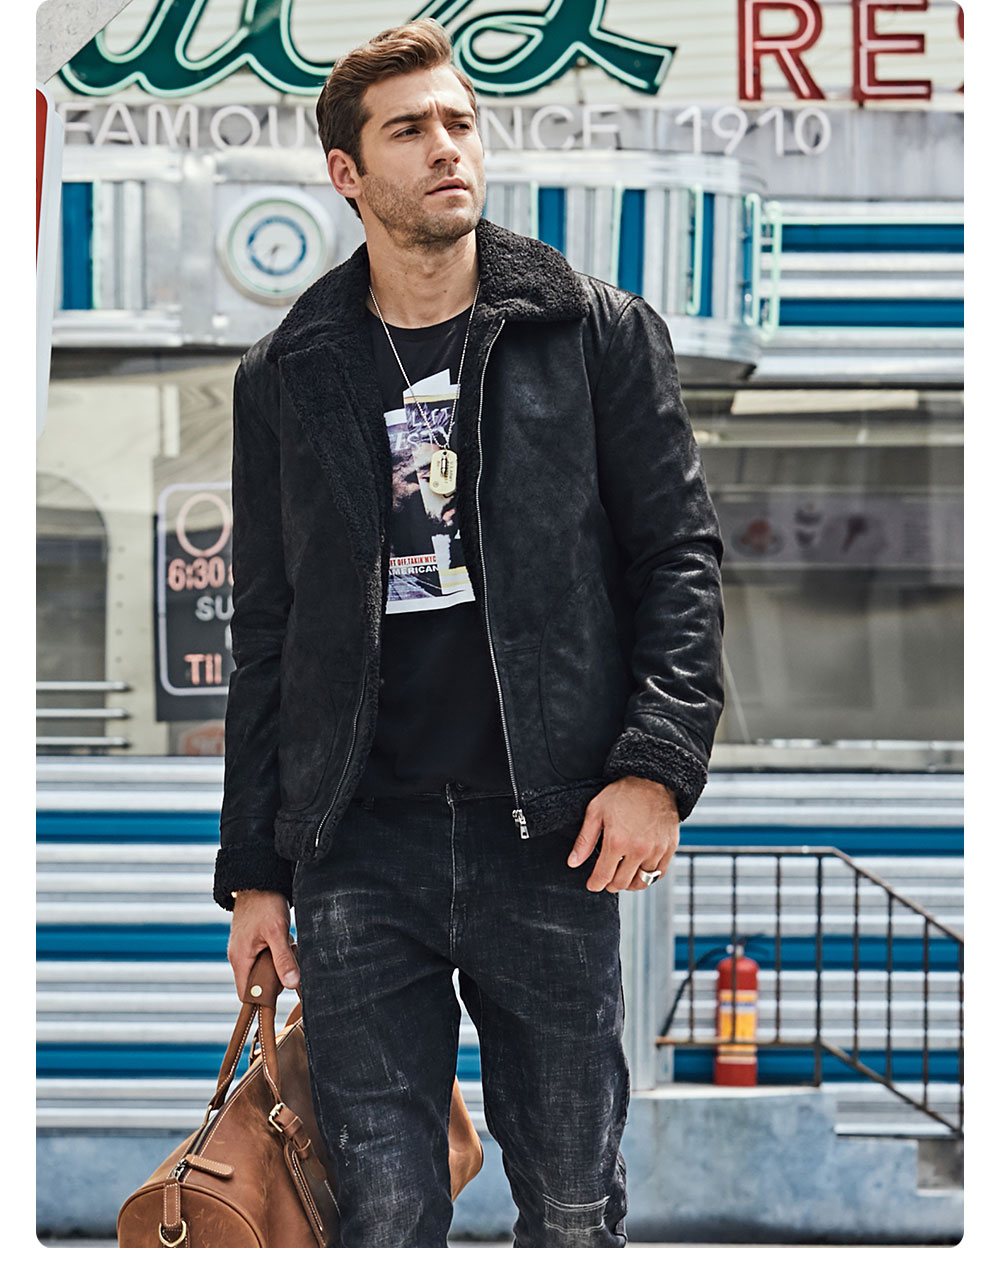 Hf9990290542e4a2ba6ae713255a738bfC New Men's Real Leather Jacket Faux Fur Collar Genuine Leather Jacket